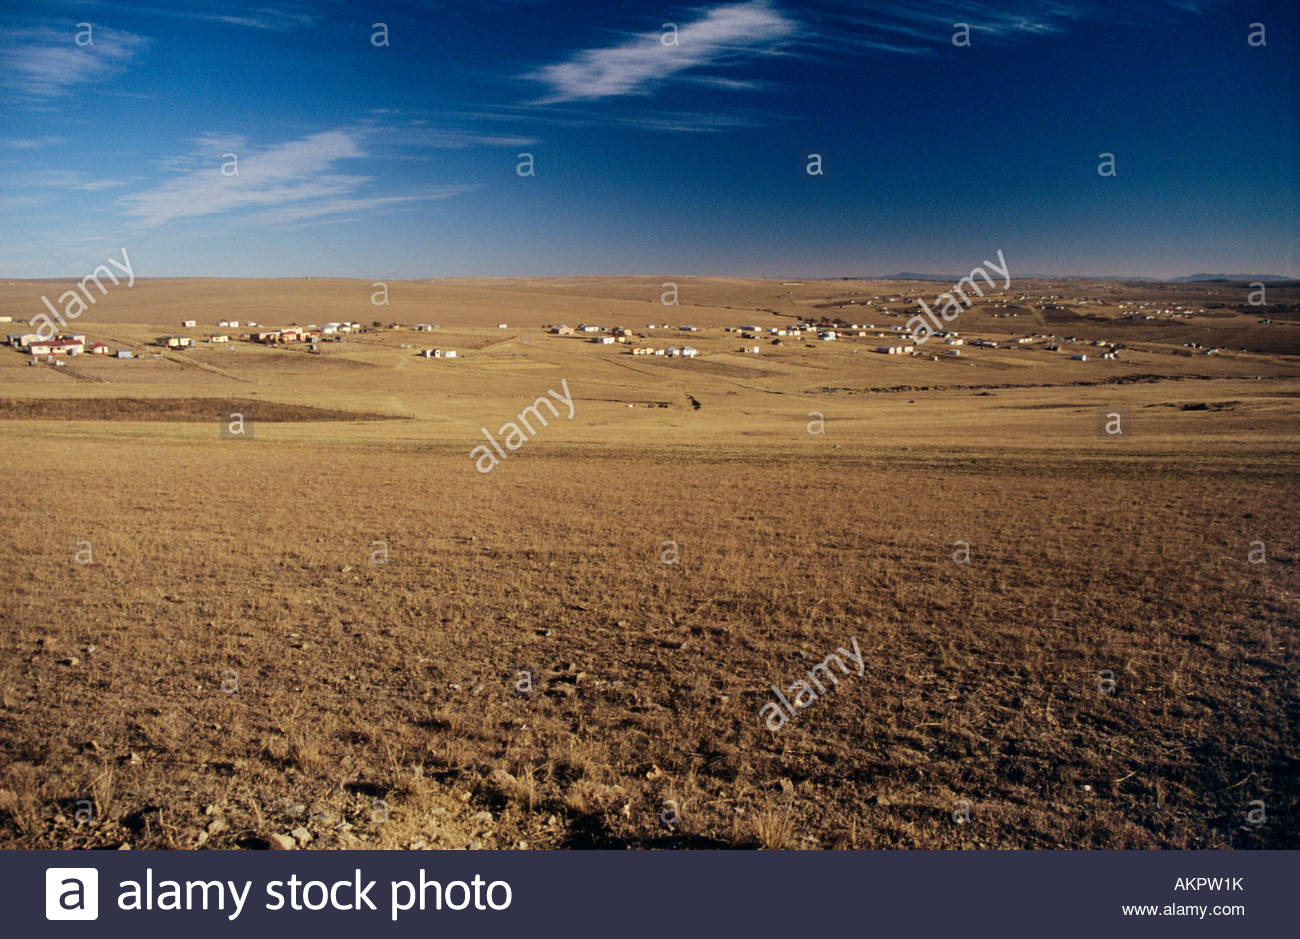 Fields and village in sout hafrica - Stock Image